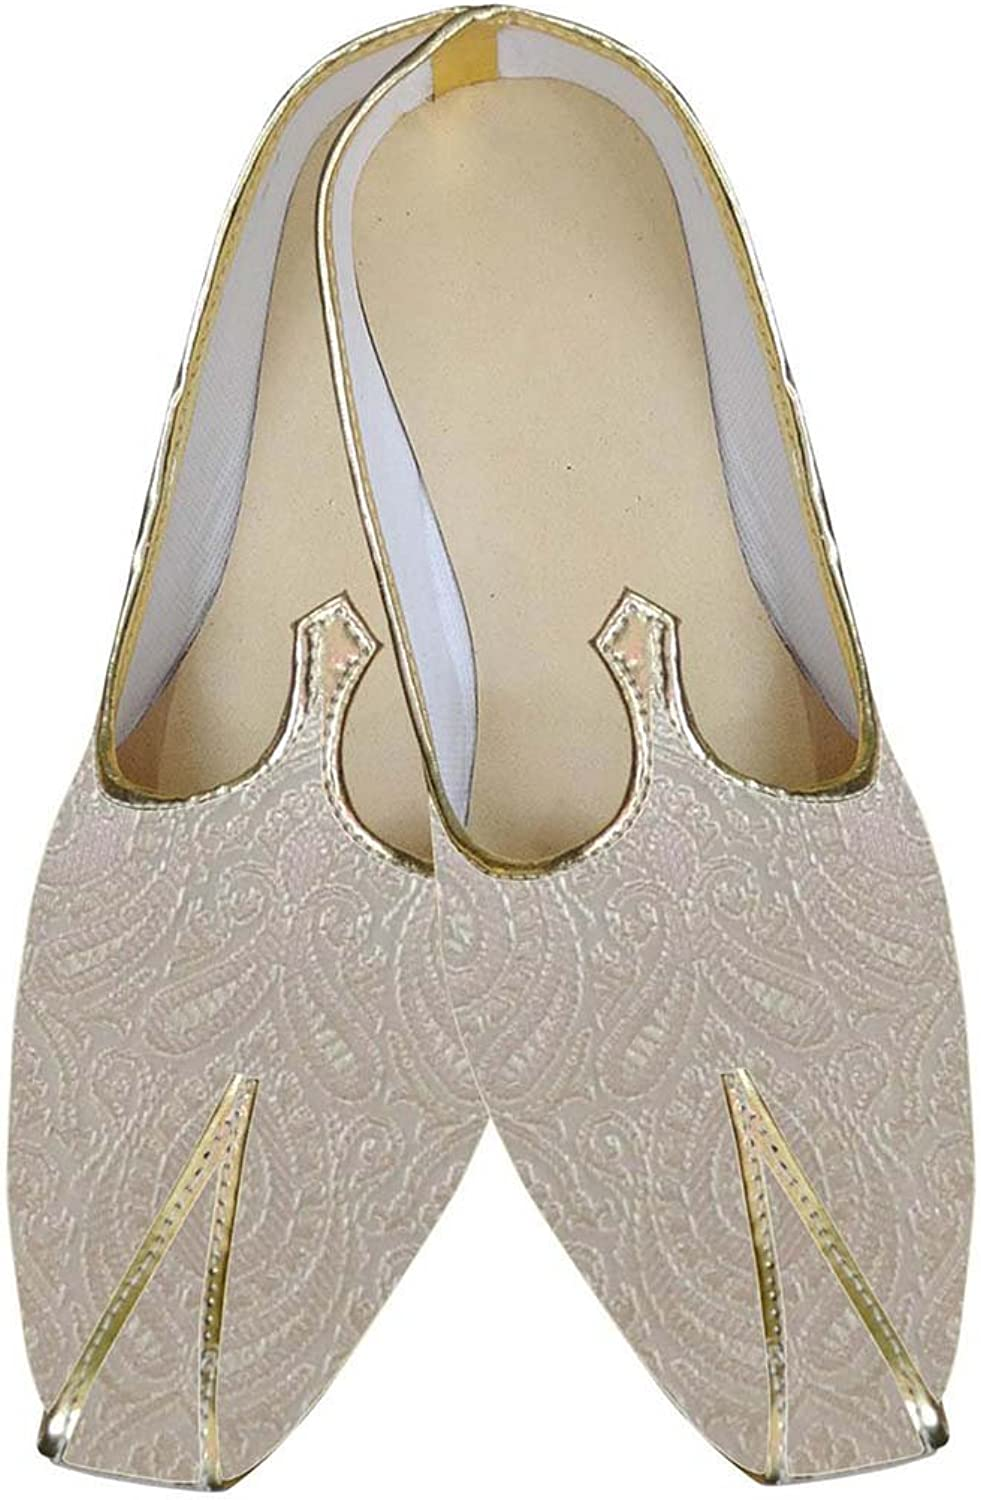 INMONARCH Mens Ivory Brocade Indian Wedding shoes MJ0163